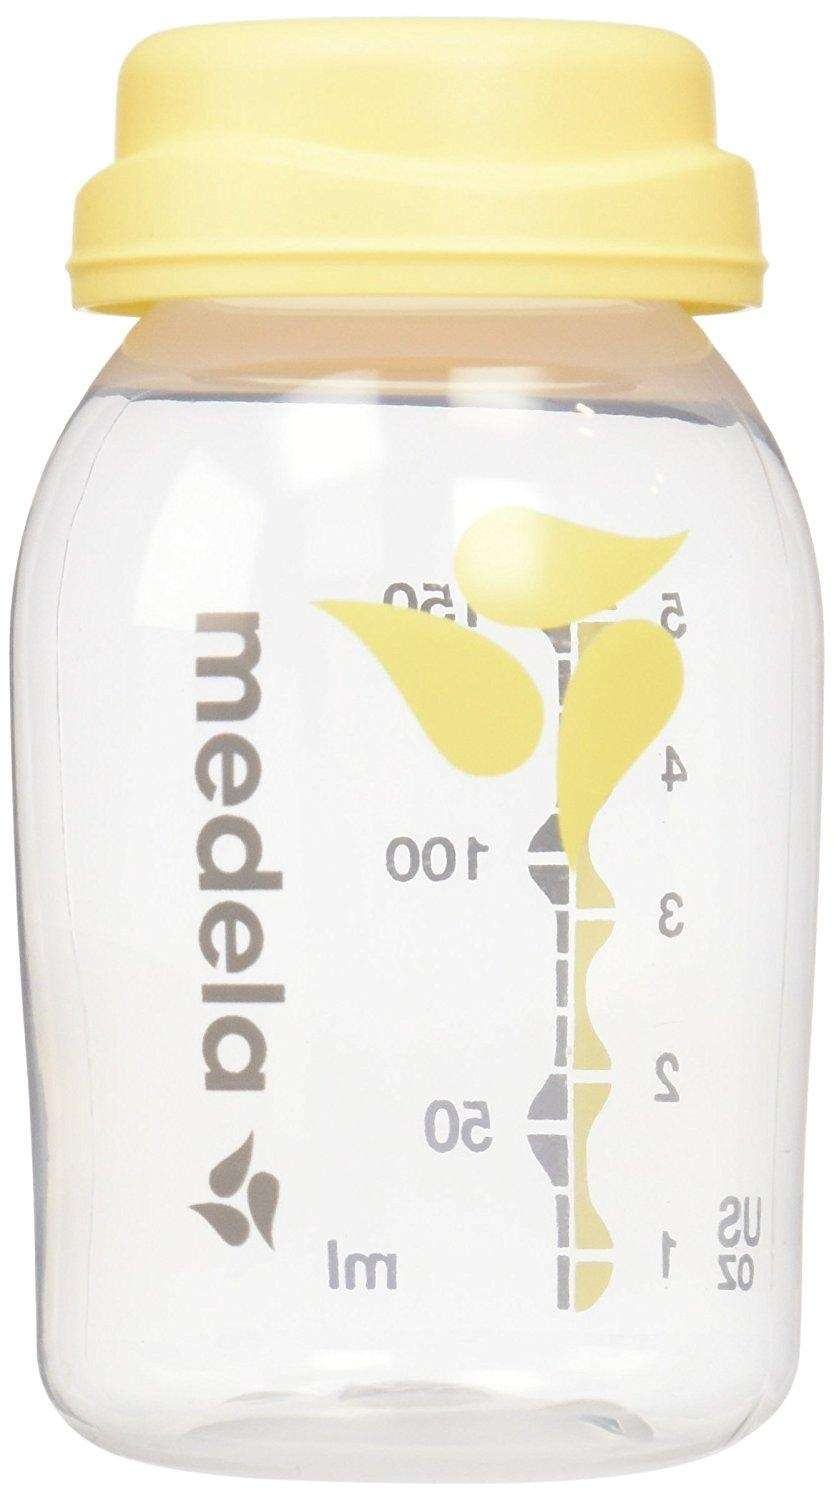 DETAILS: Compatible with all Medela-brand breast pumps, BPA-free,